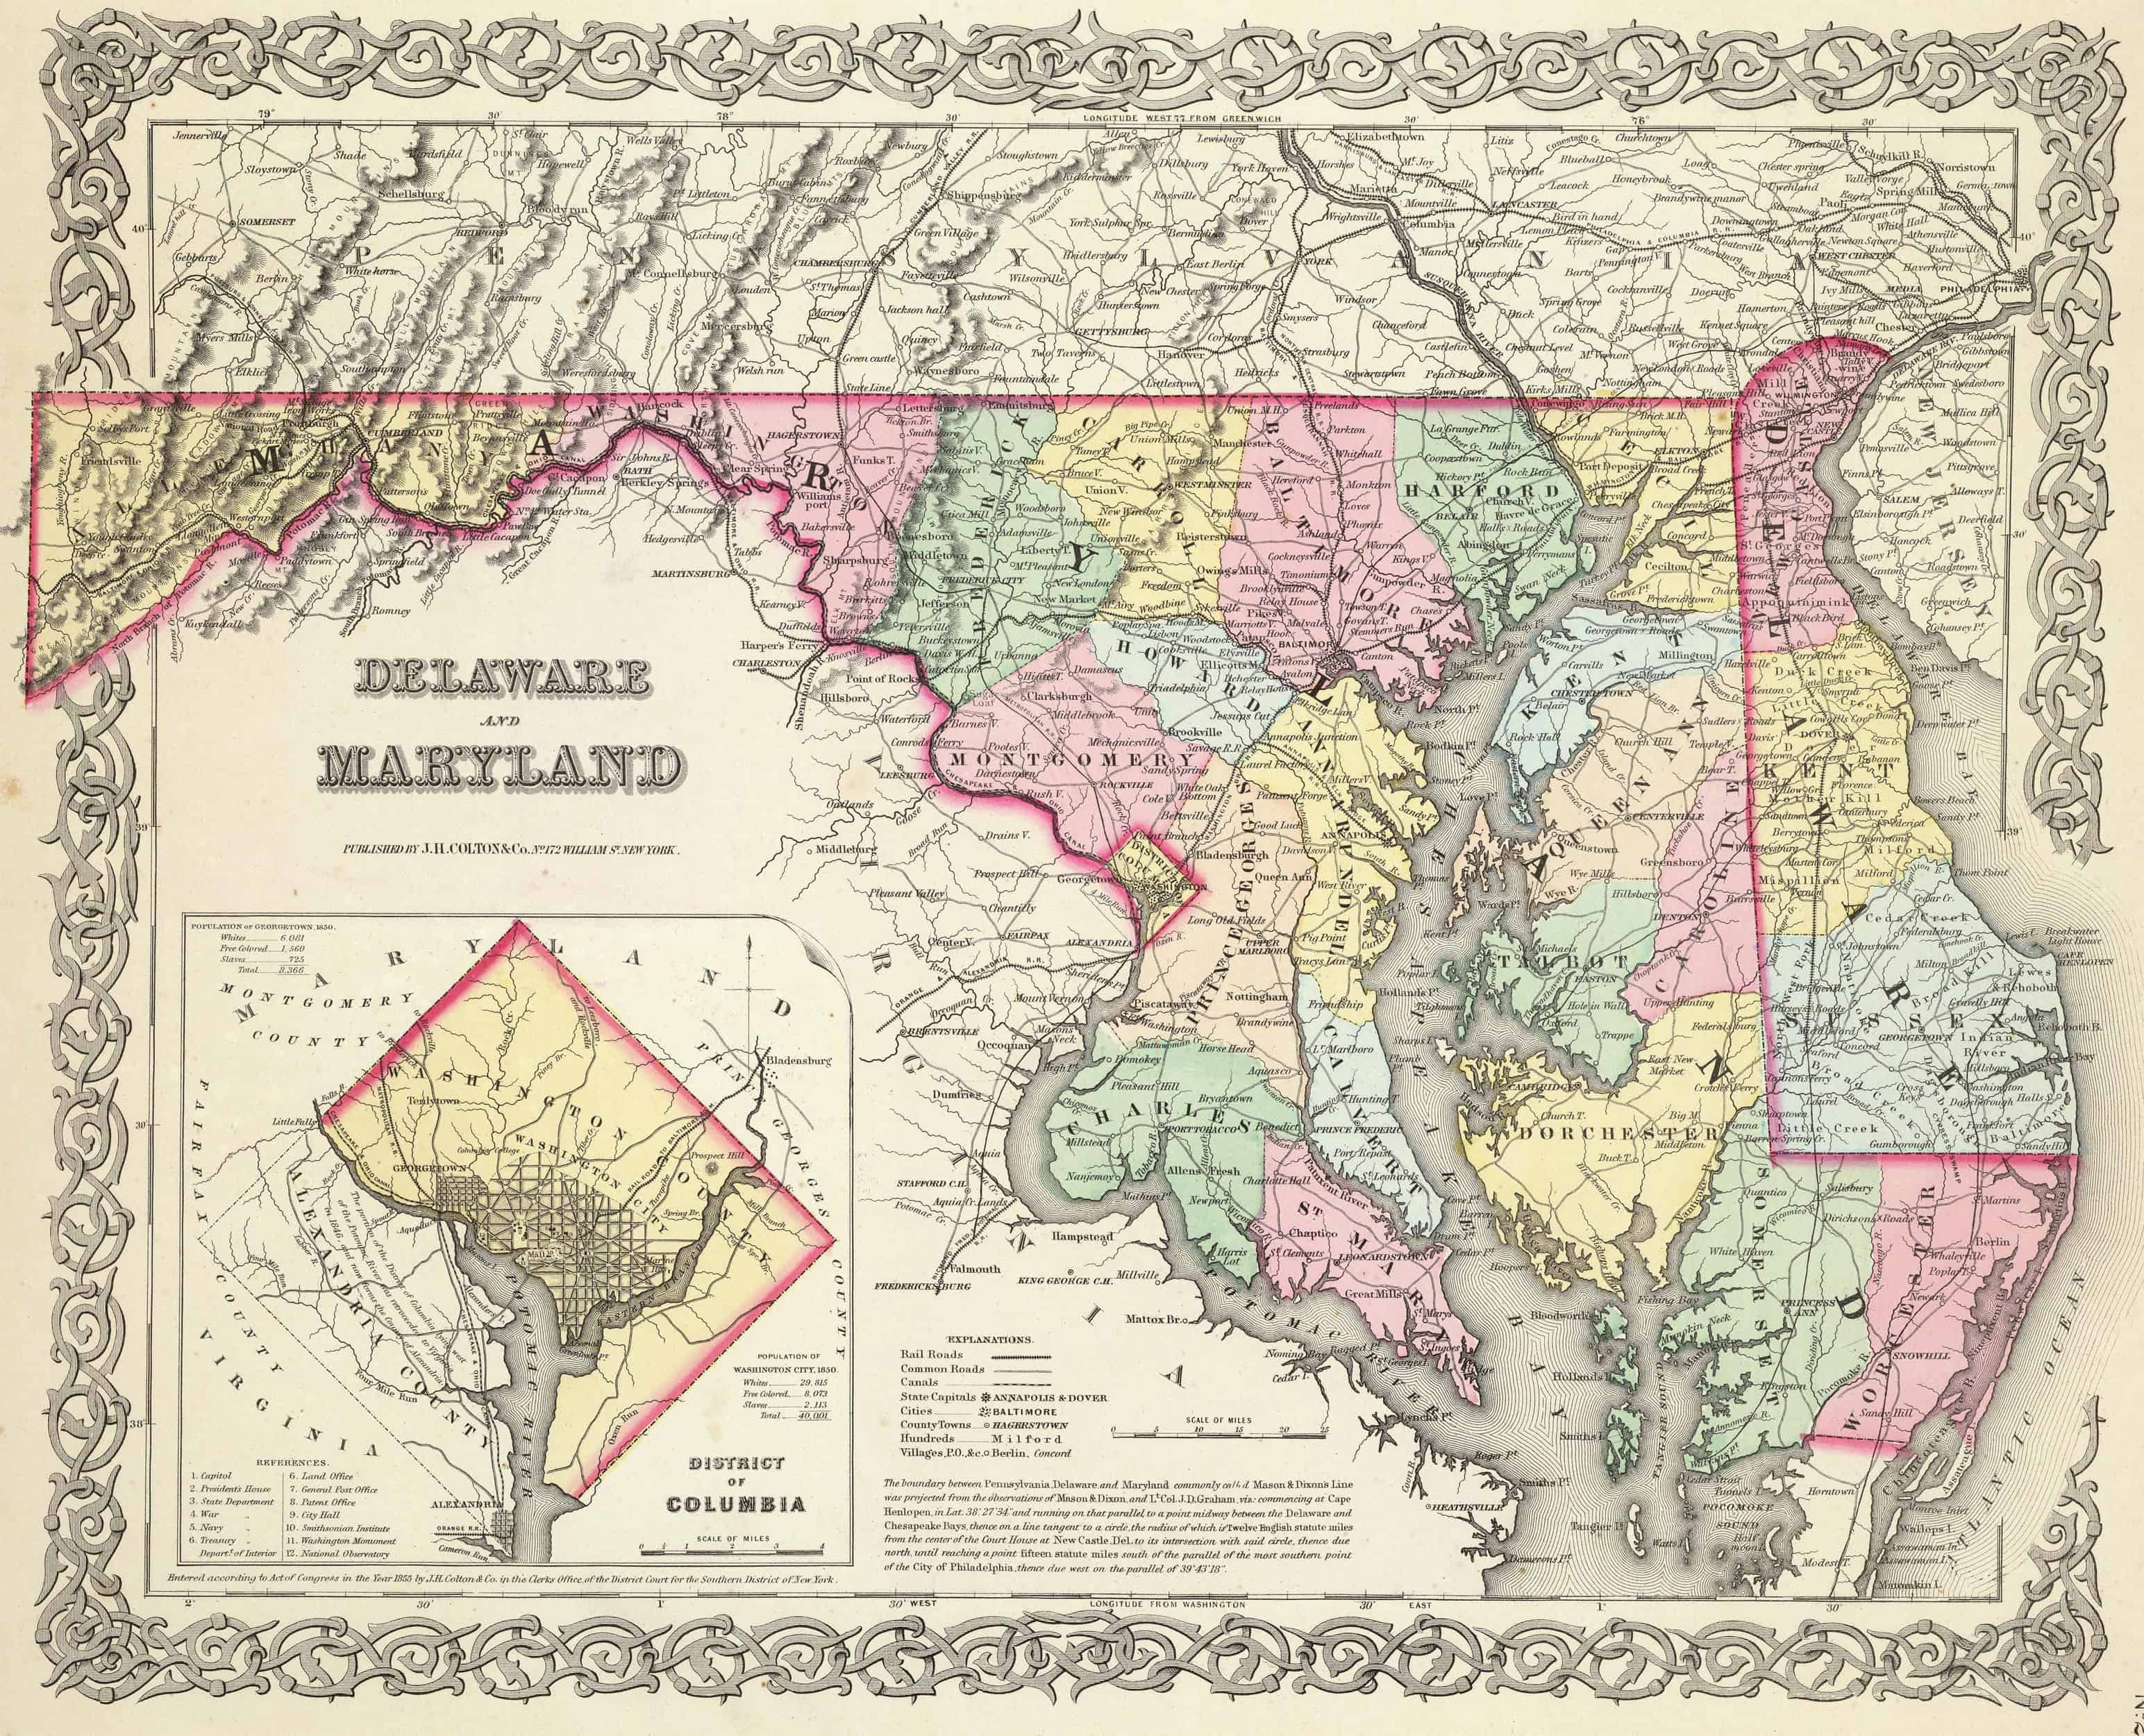 Old Historical City, County and State Maps of Maryland